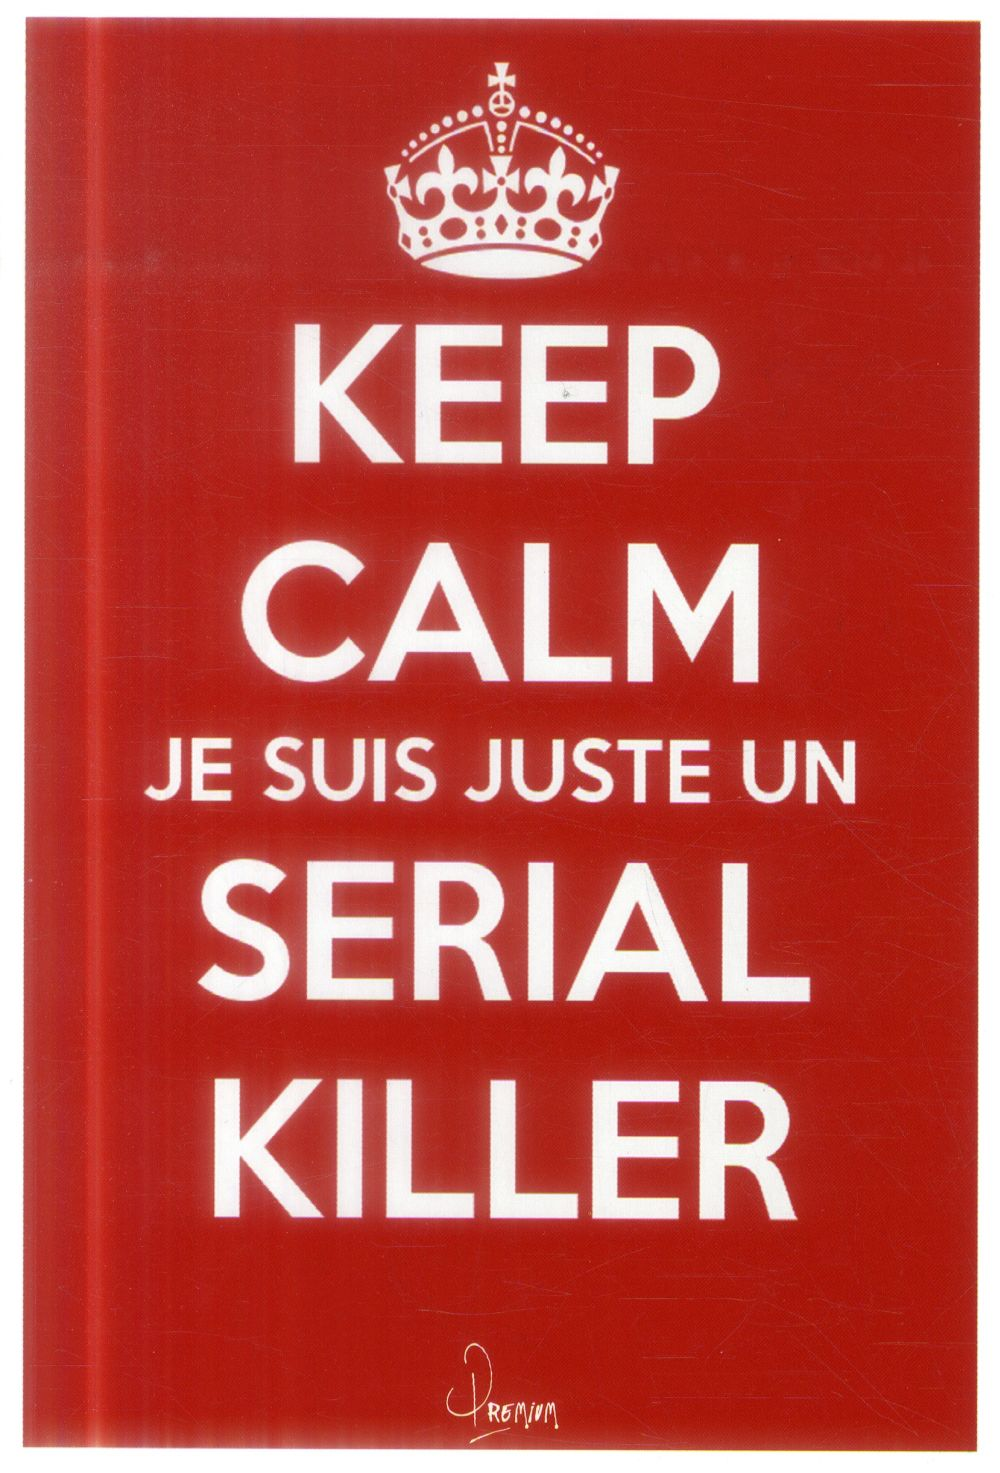 KEEP CALM JE SUIS JUSTE UN SERIAL KILLER